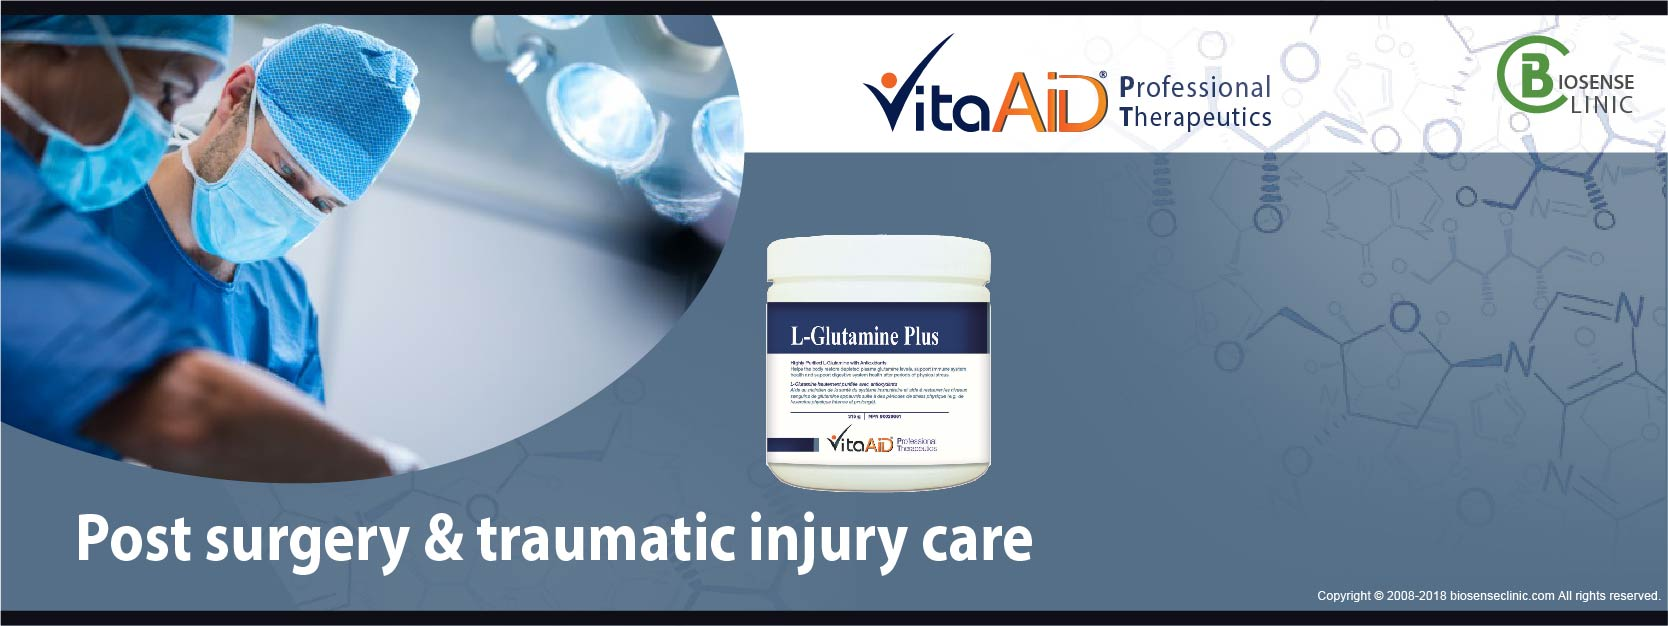 VitaAid category banner Post surgery & traumatic injury care